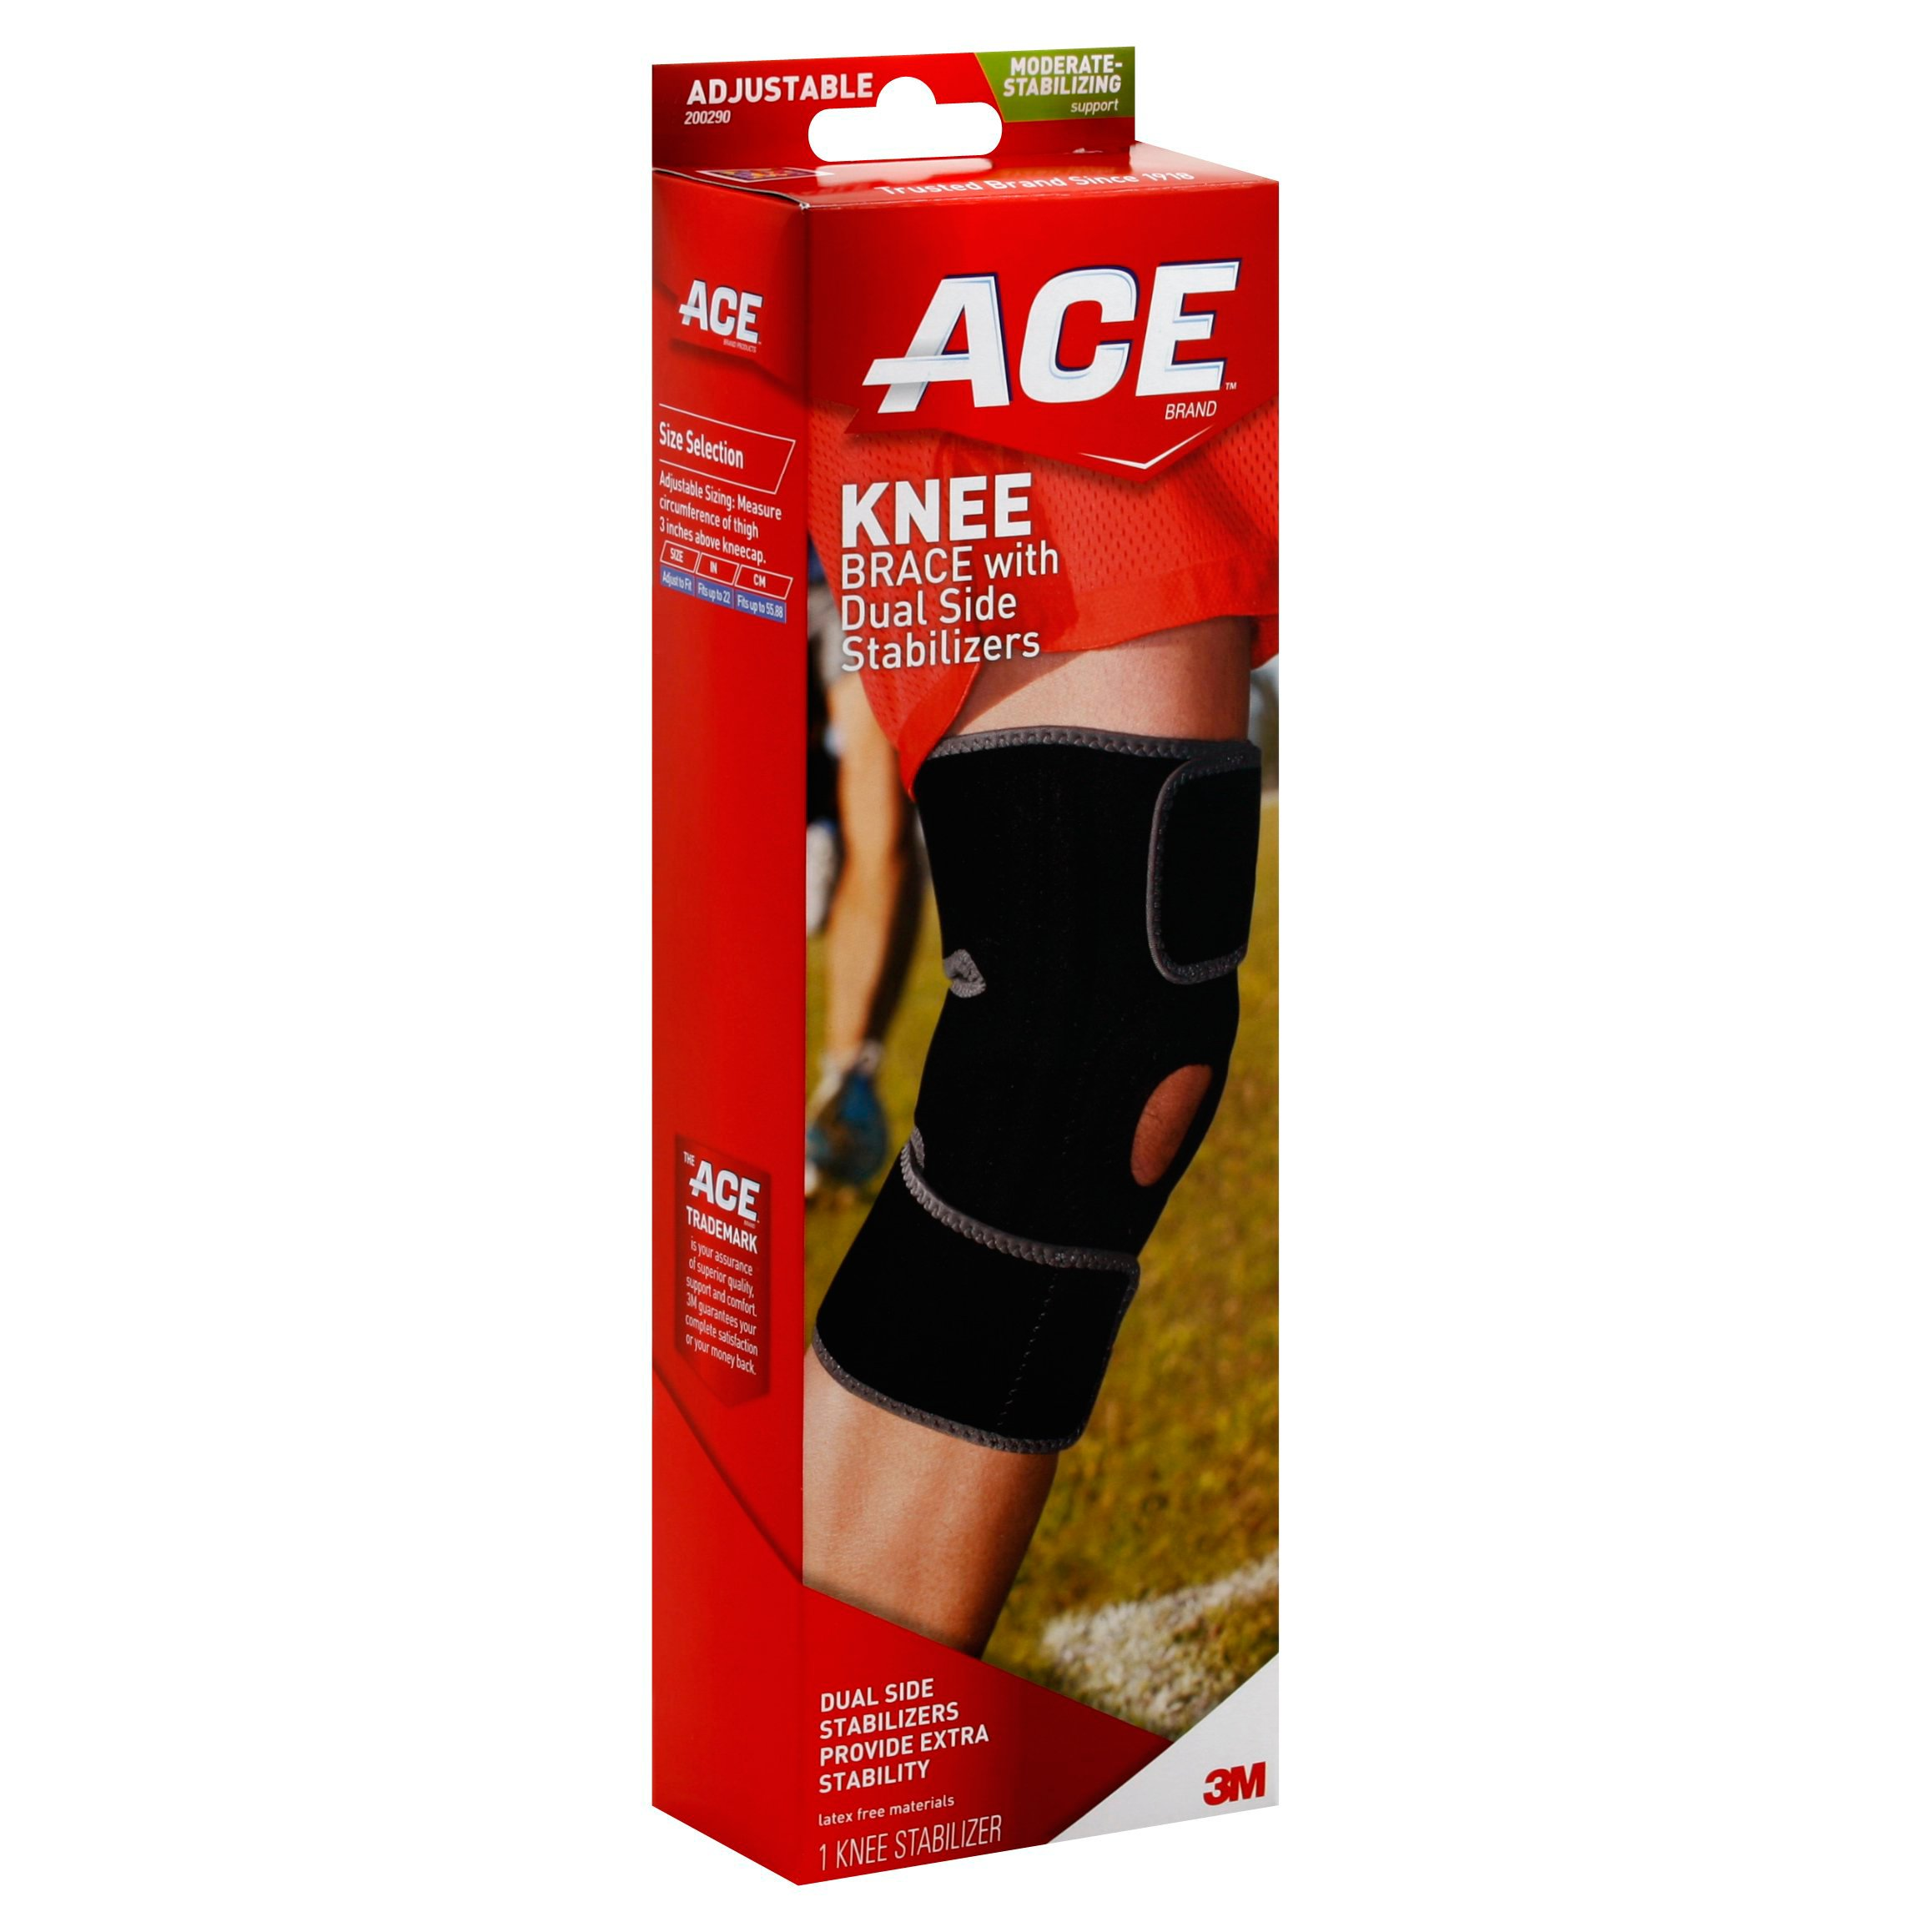 Ace Adjustable Knee Brace With Dural Side Stabilizers Shop